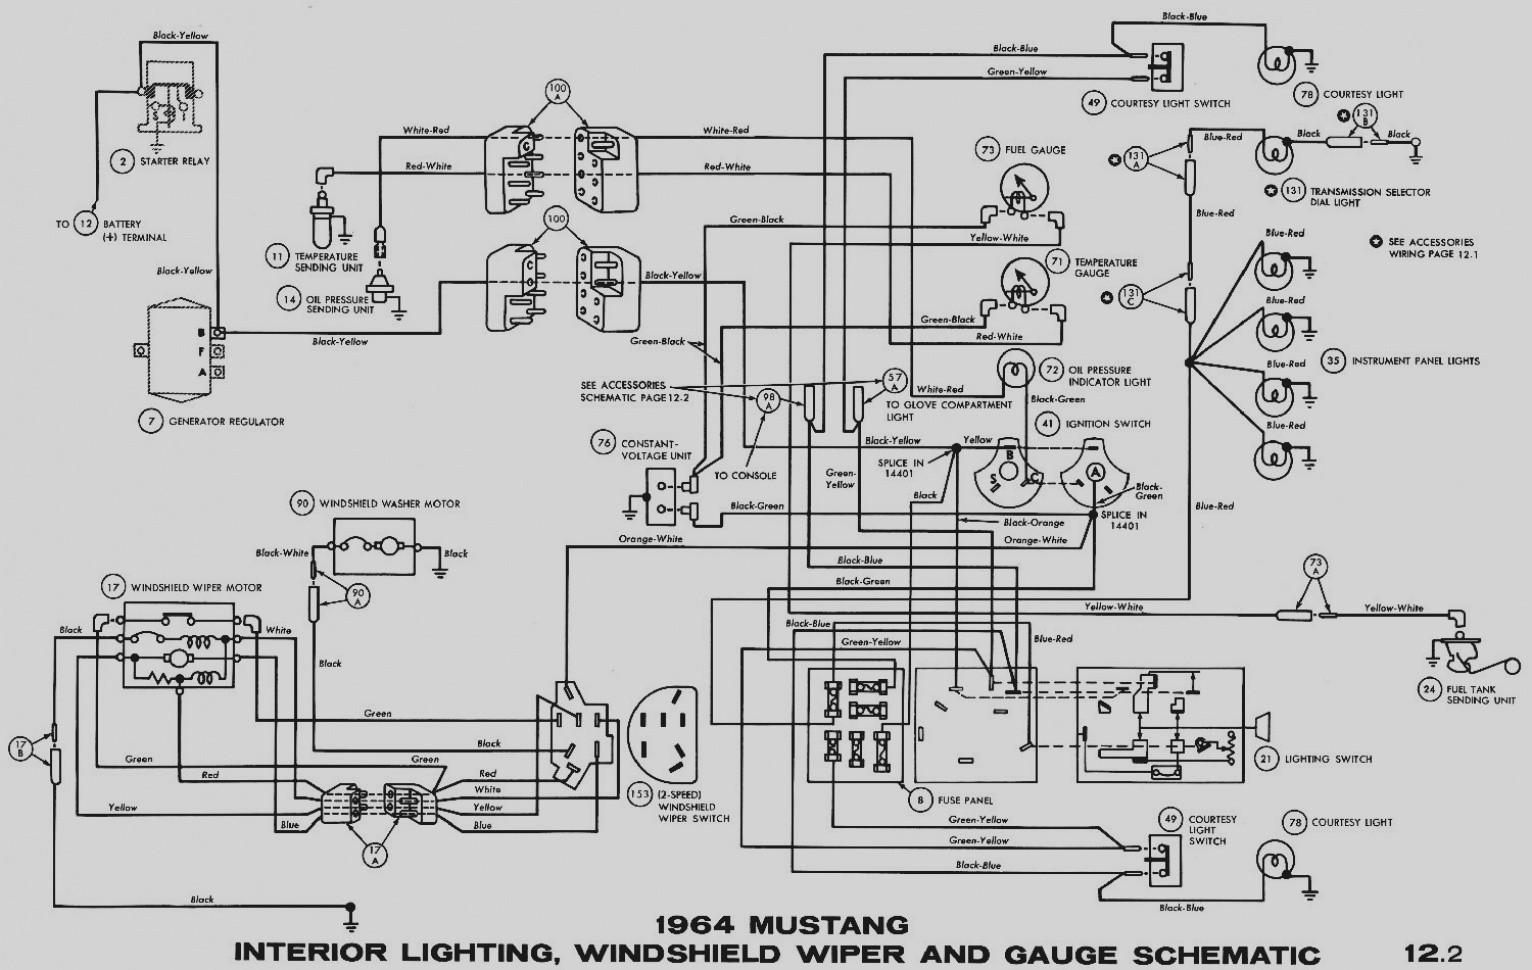 1964 ford falcon wiper switch wiring diagram wiring diagram dataford falcon fuse panel repair kit ford [ 1532 x 970 Pixel ]